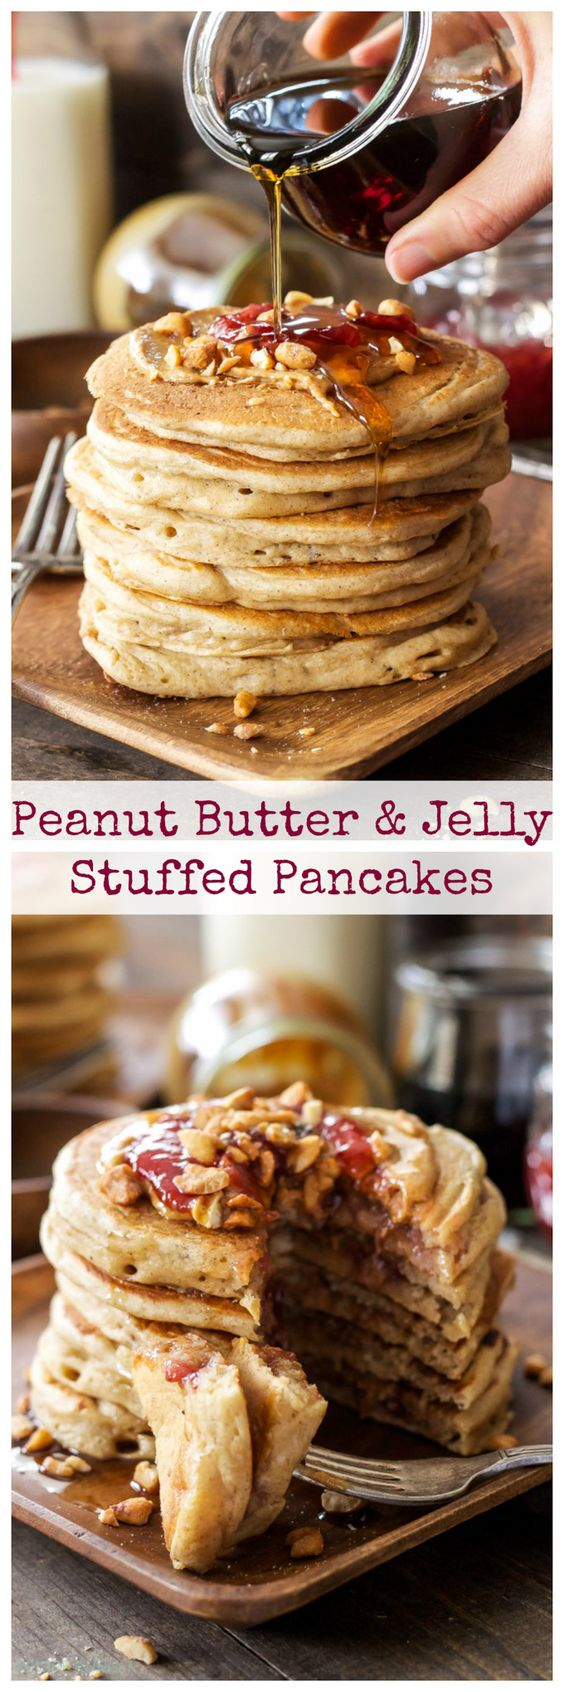 ... Butter & Jelly Stuffed Pancakes | Recipe | Jelly, Peanuts and Pancakes